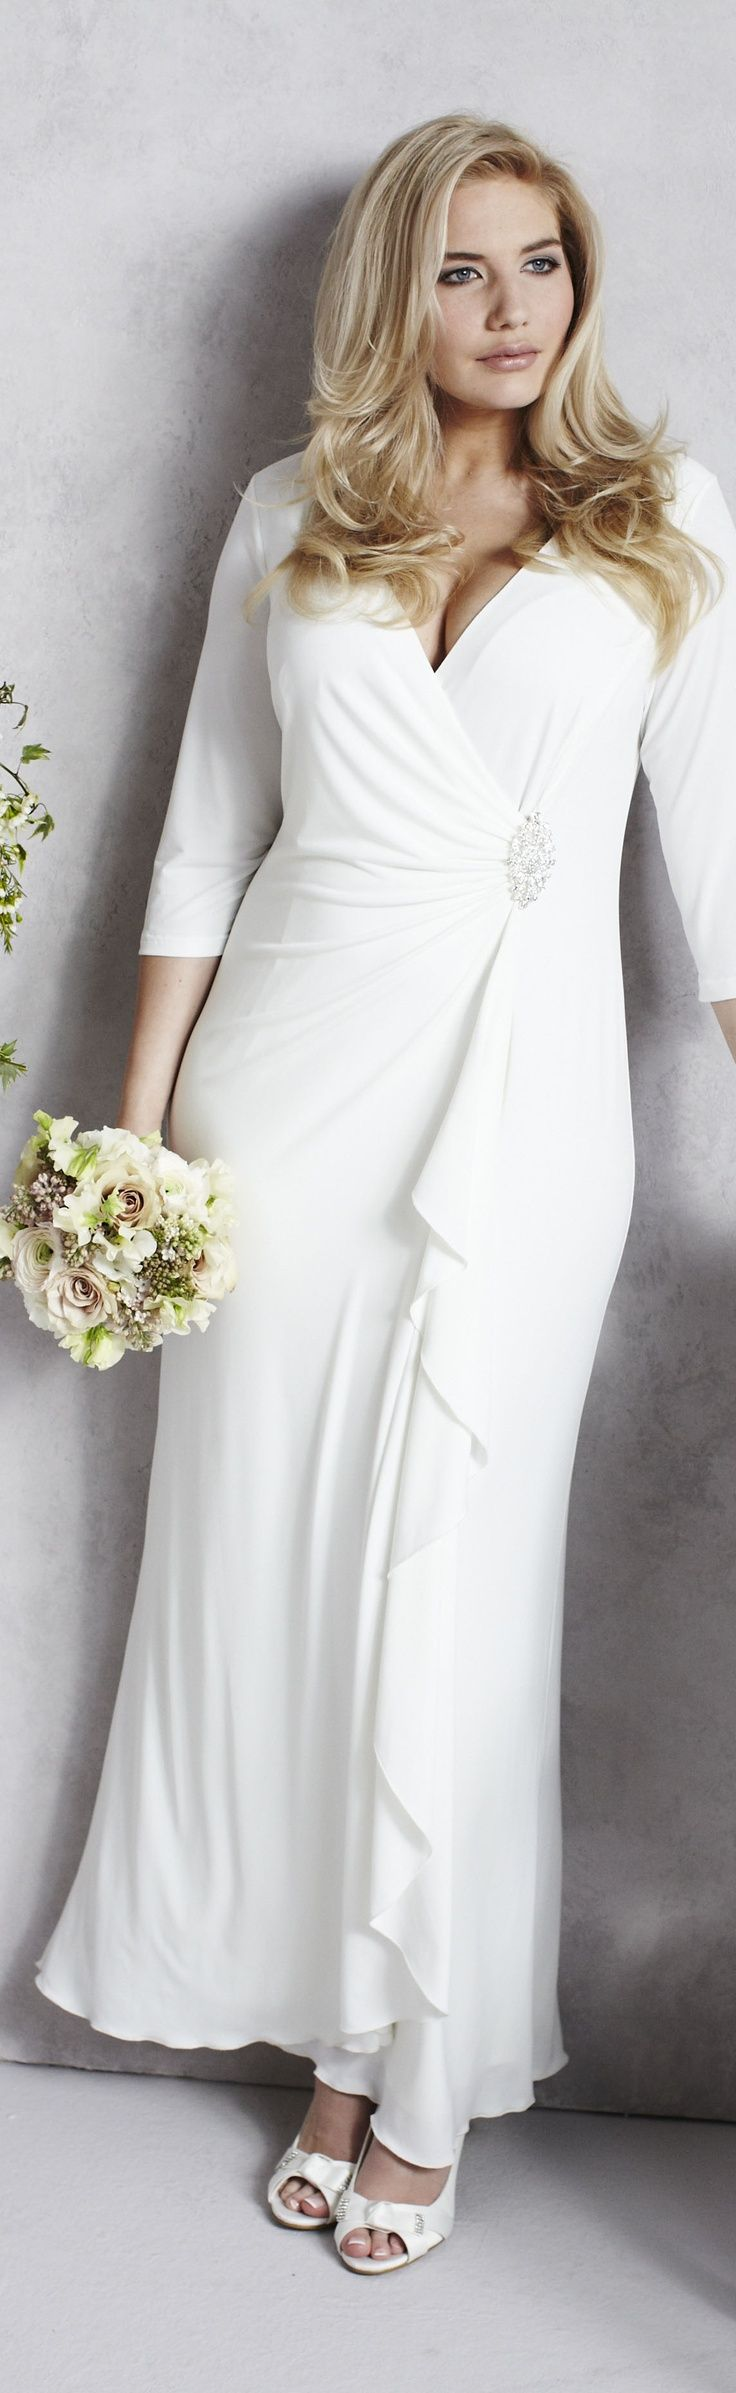 Informal Wedding Dresses For Older Brides: Pin By Makeup & Hair By Vicki Millar On Wedding Gowns